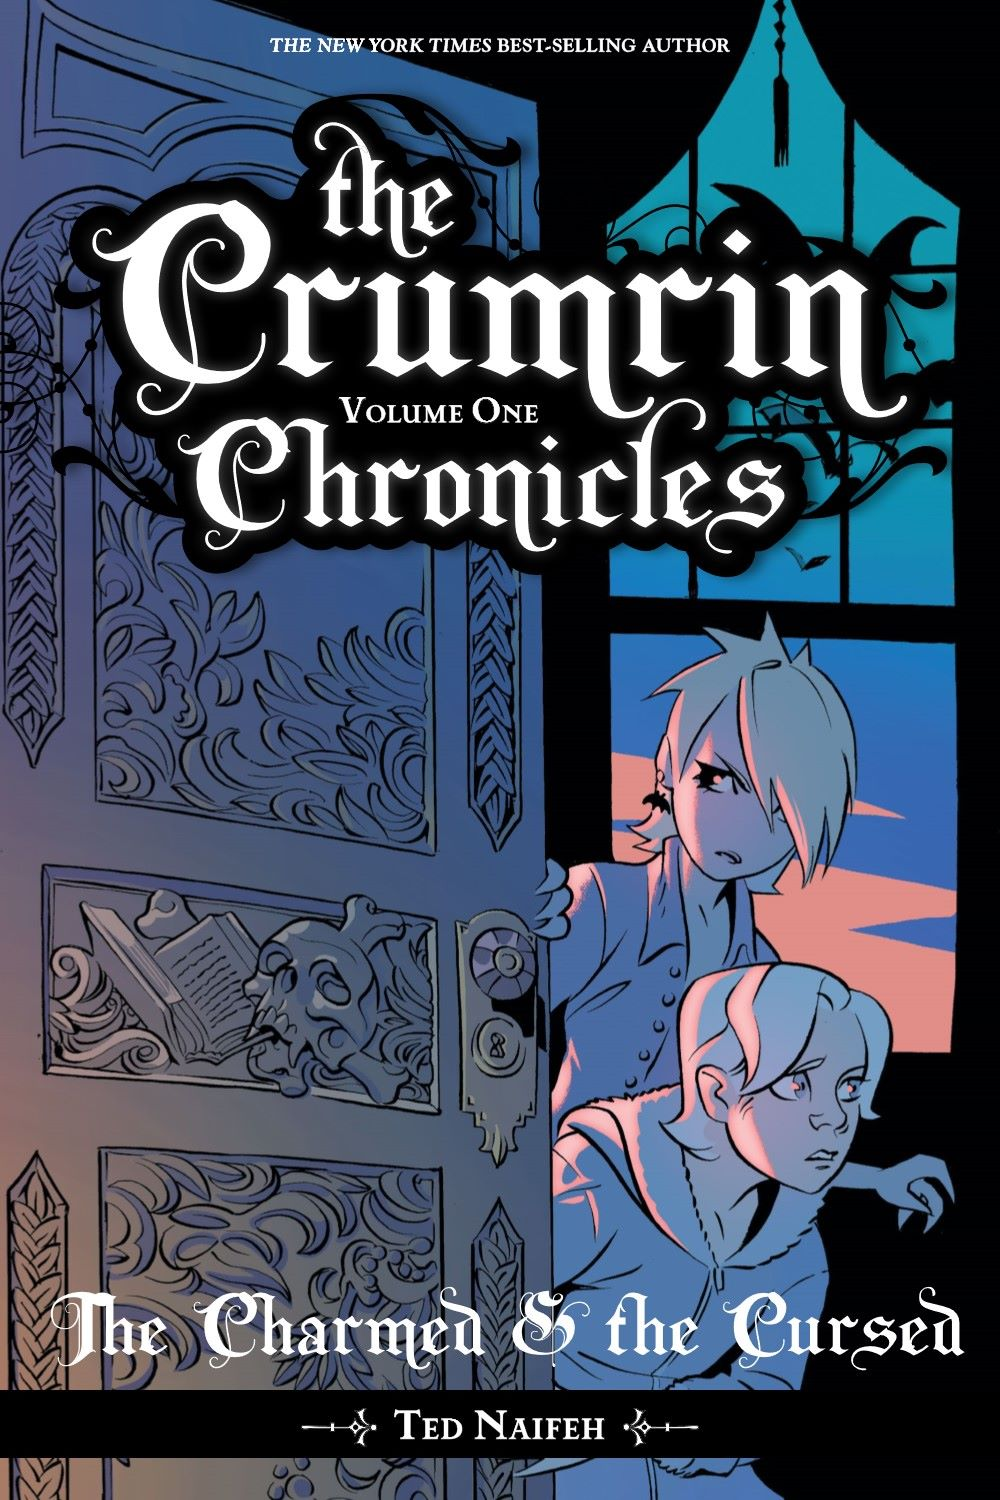 CRUMCHRON-V1-REFERENCE-001 ComicList Previews: THE CRUMRIN CHRONICLES VOLUME 1 THE CHARMED AND THE CURSED TP